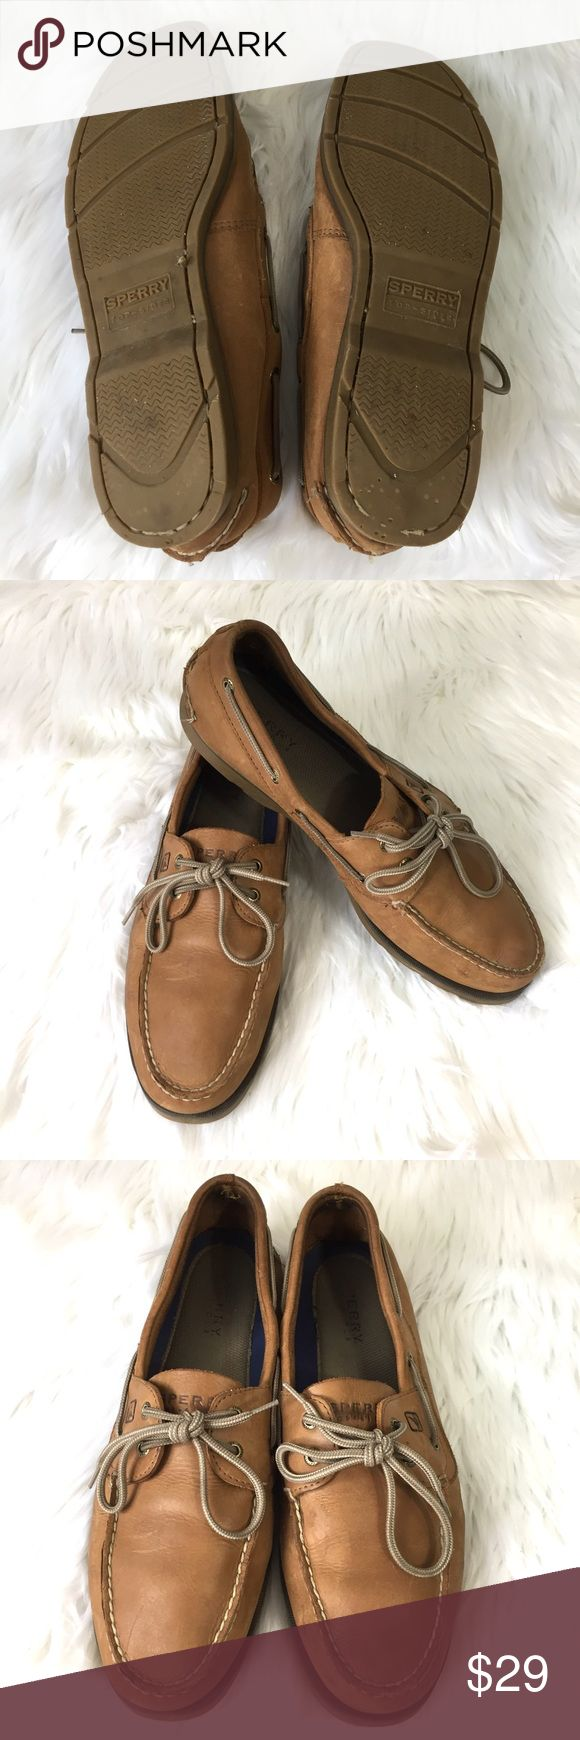 Sperry Topsiders original boat shoe size 12 Original Sperry Topsider boat shoe size 13 Sperry Top-Sider Shoes Boat Shoes